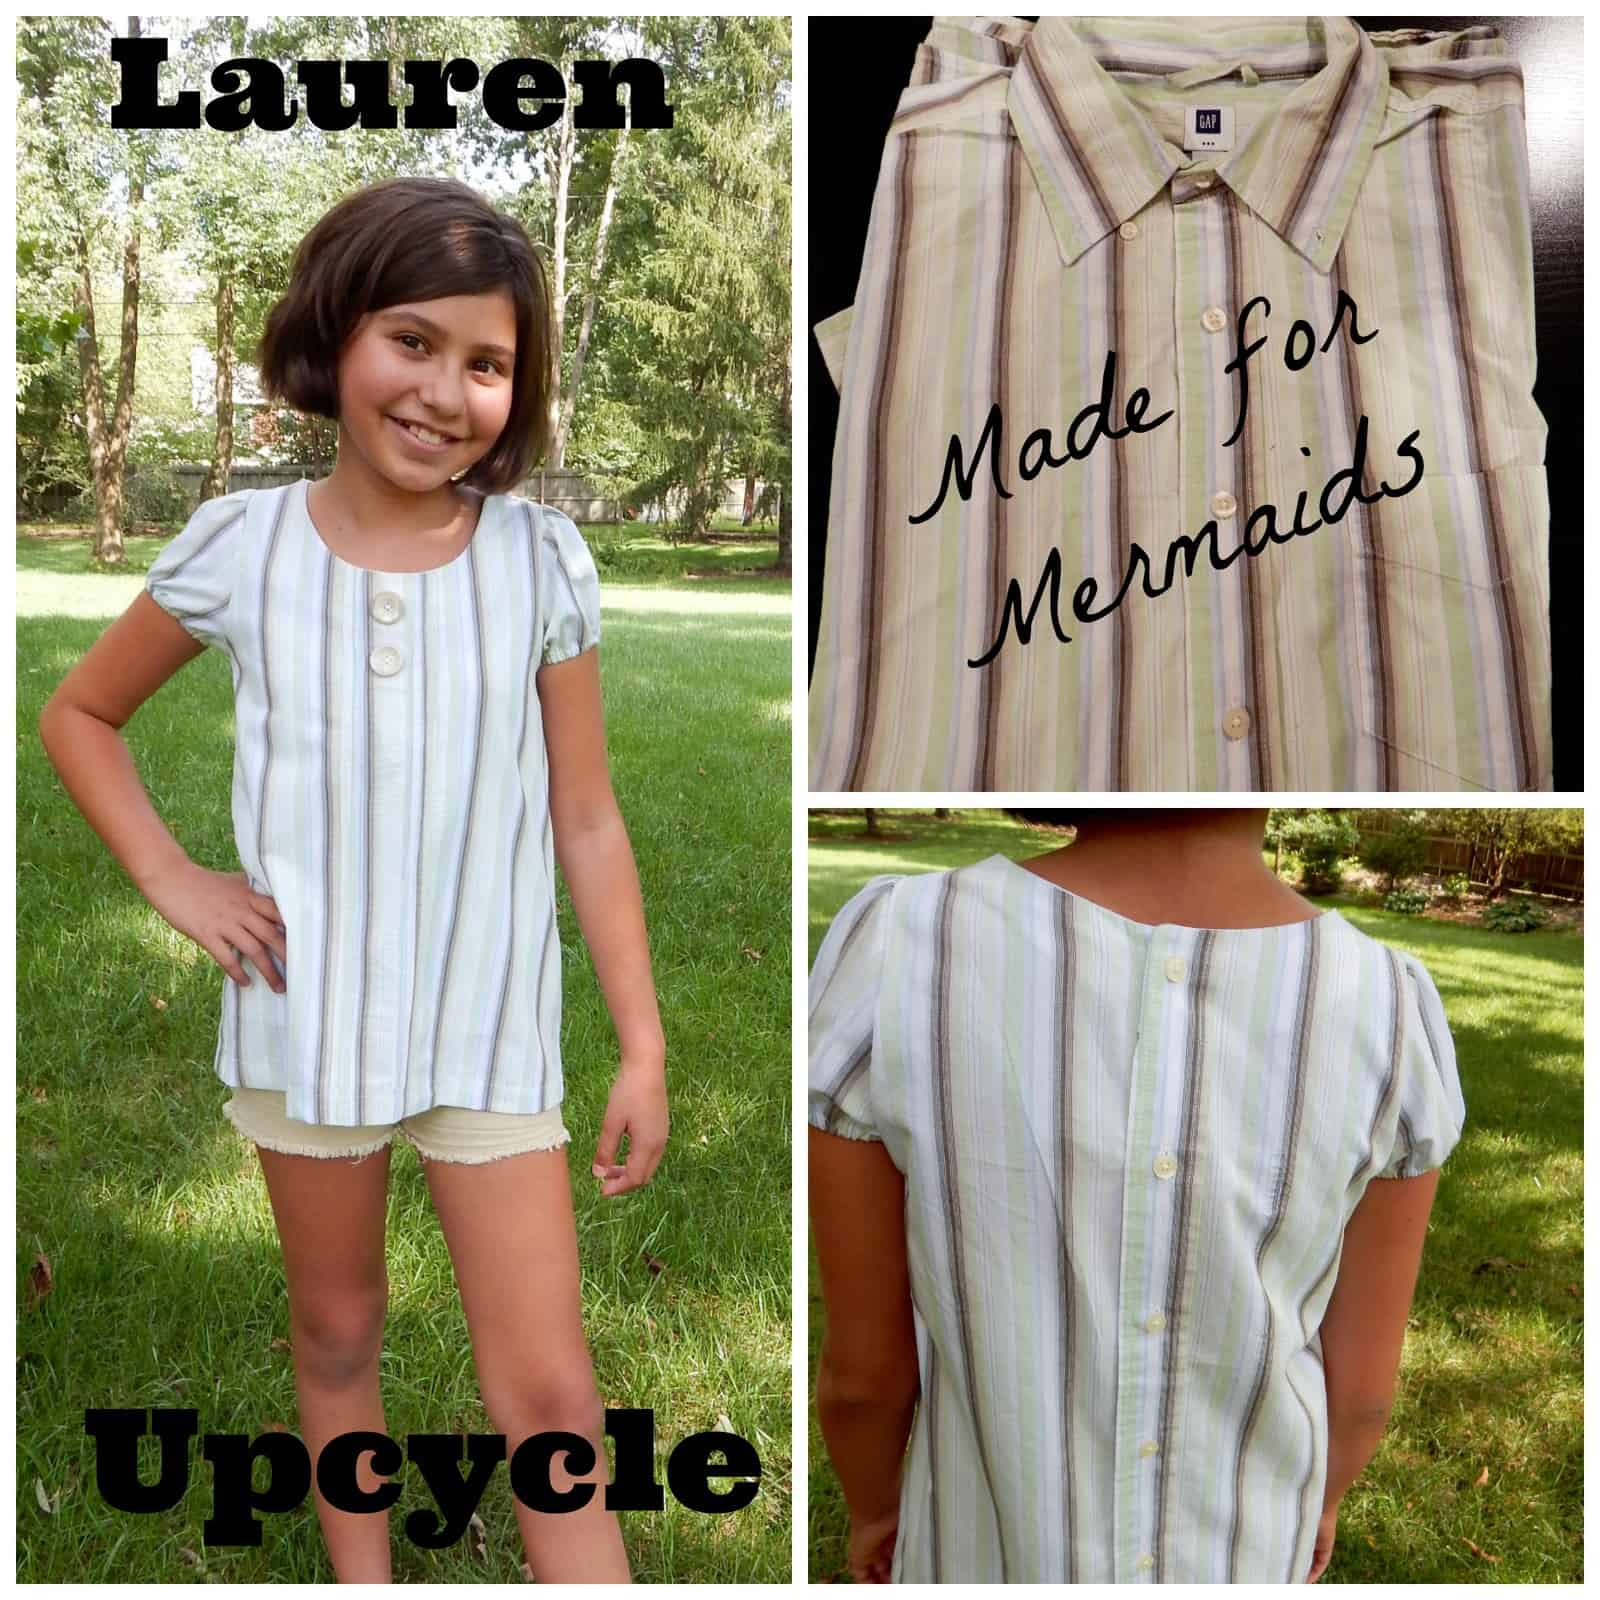 Lauren Upcycle